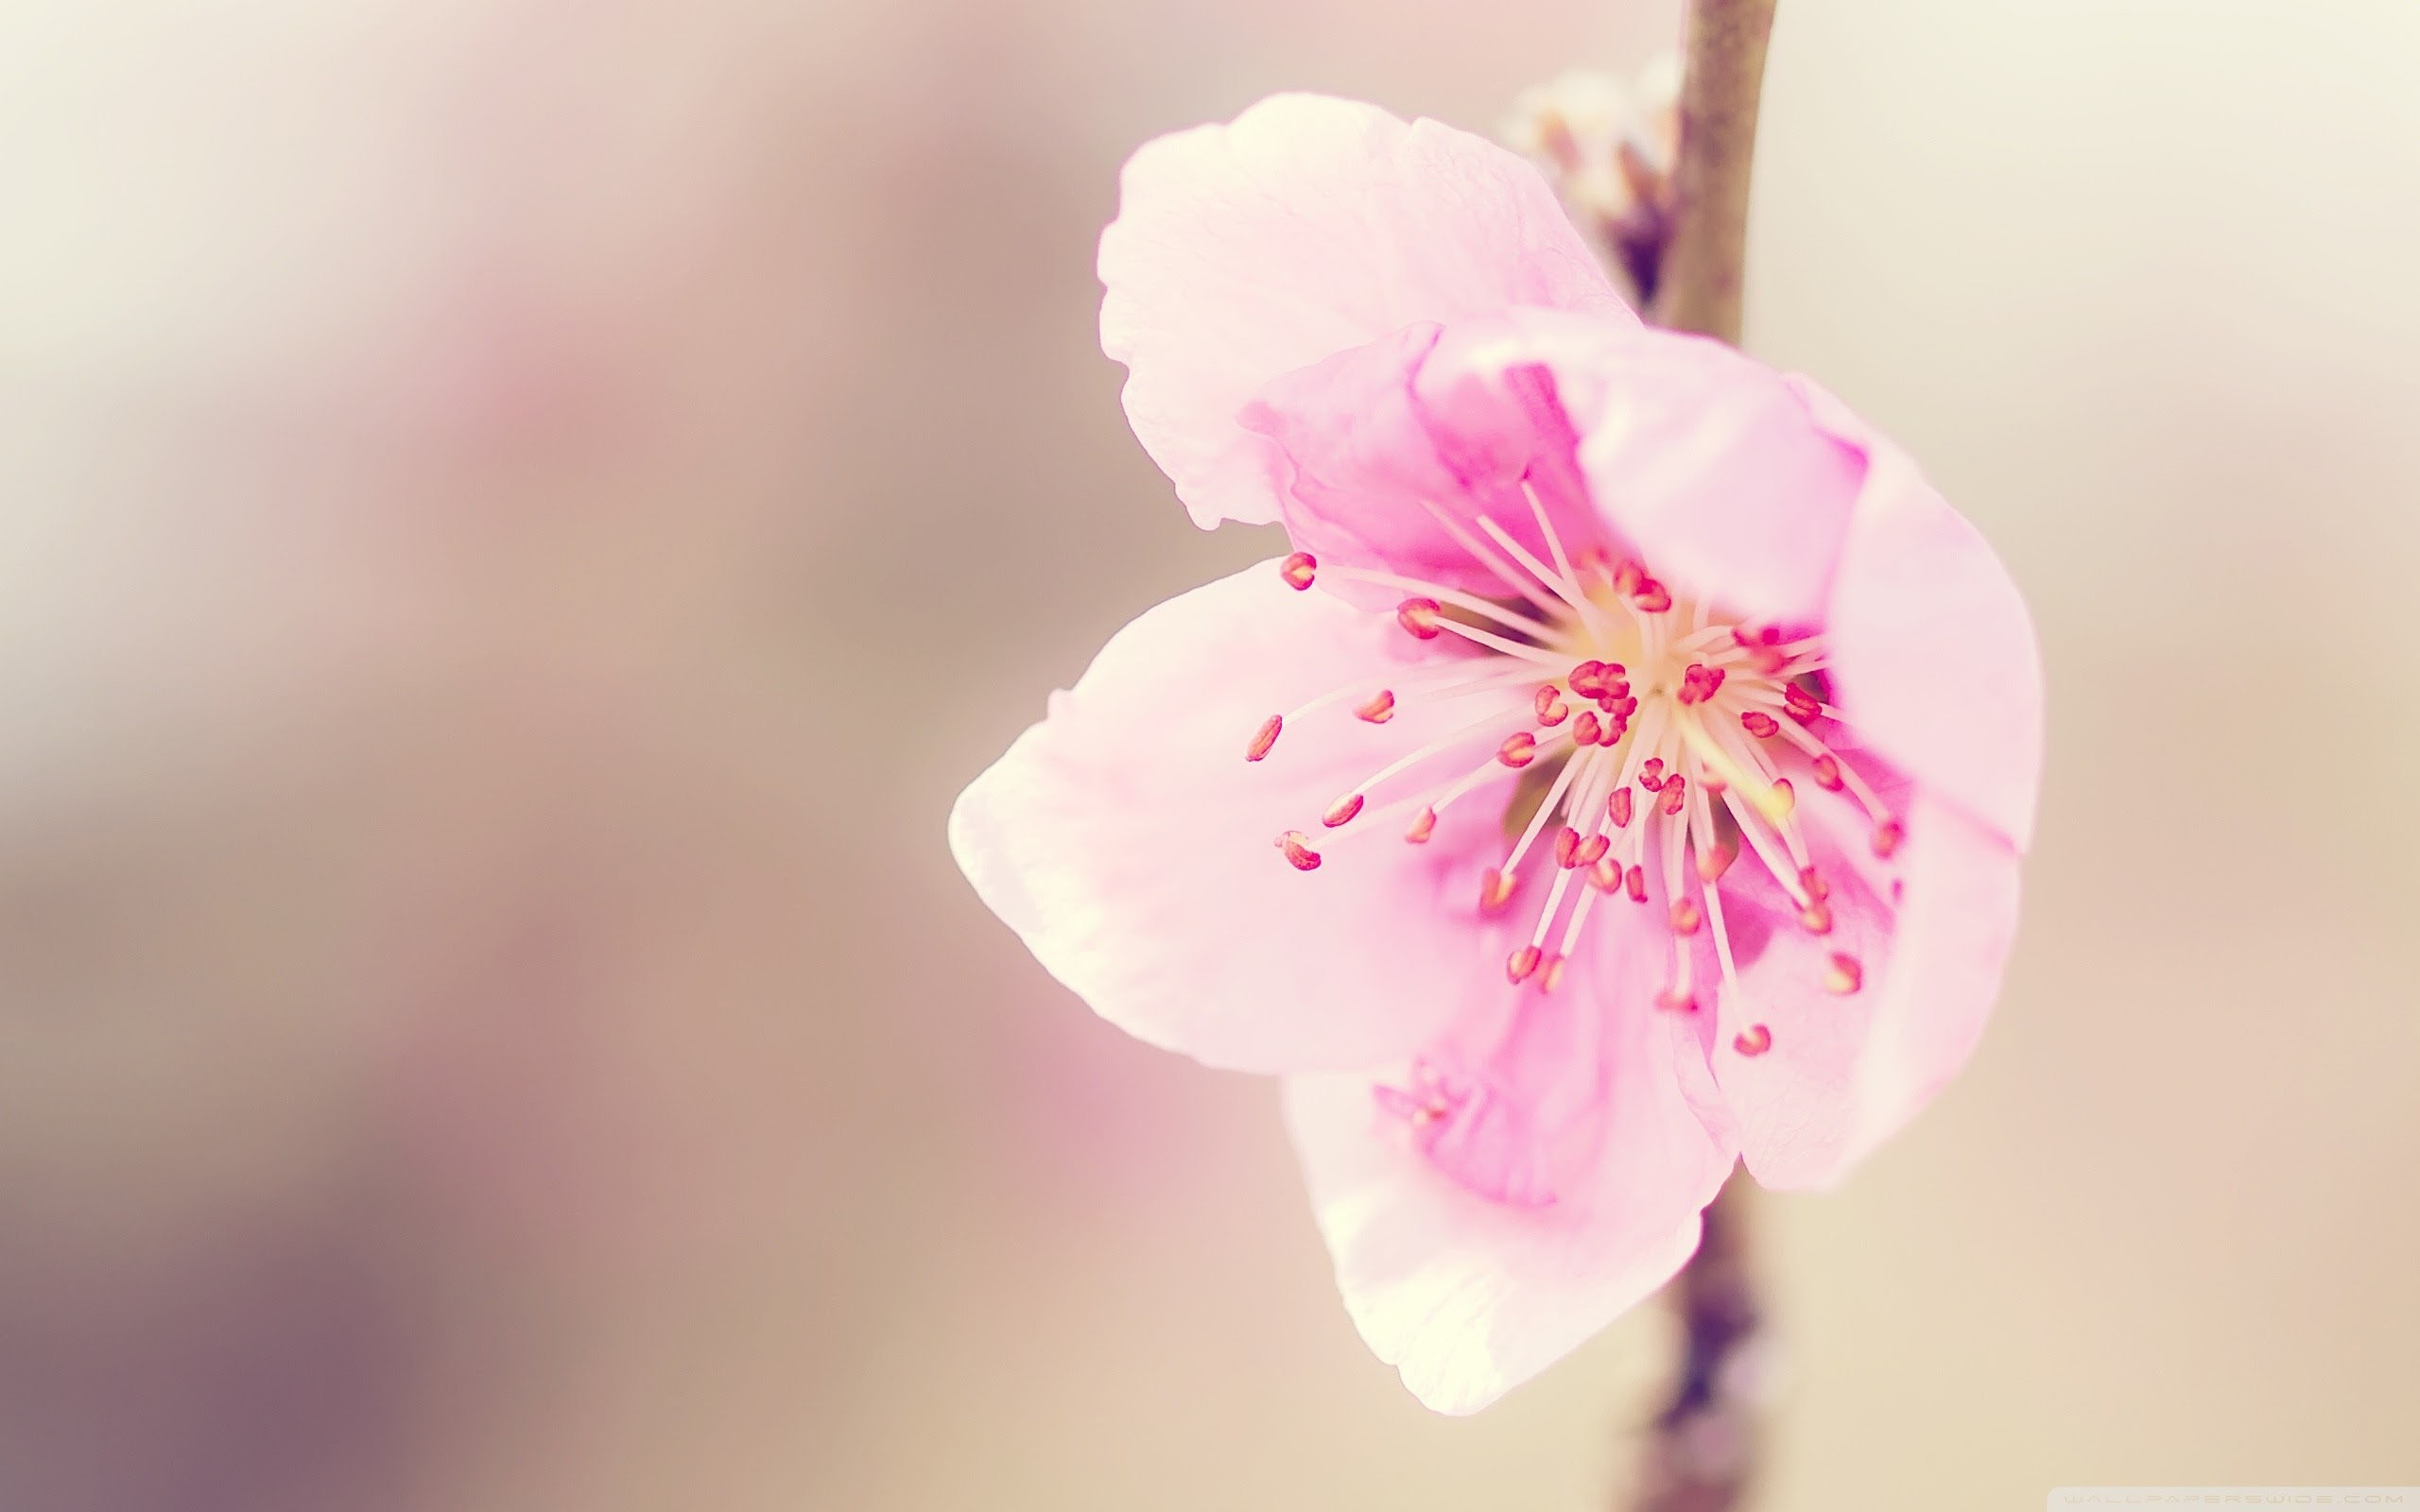 … Amazing-Pink-Peach-Flowers-Wallpapers-HD-Pictures …